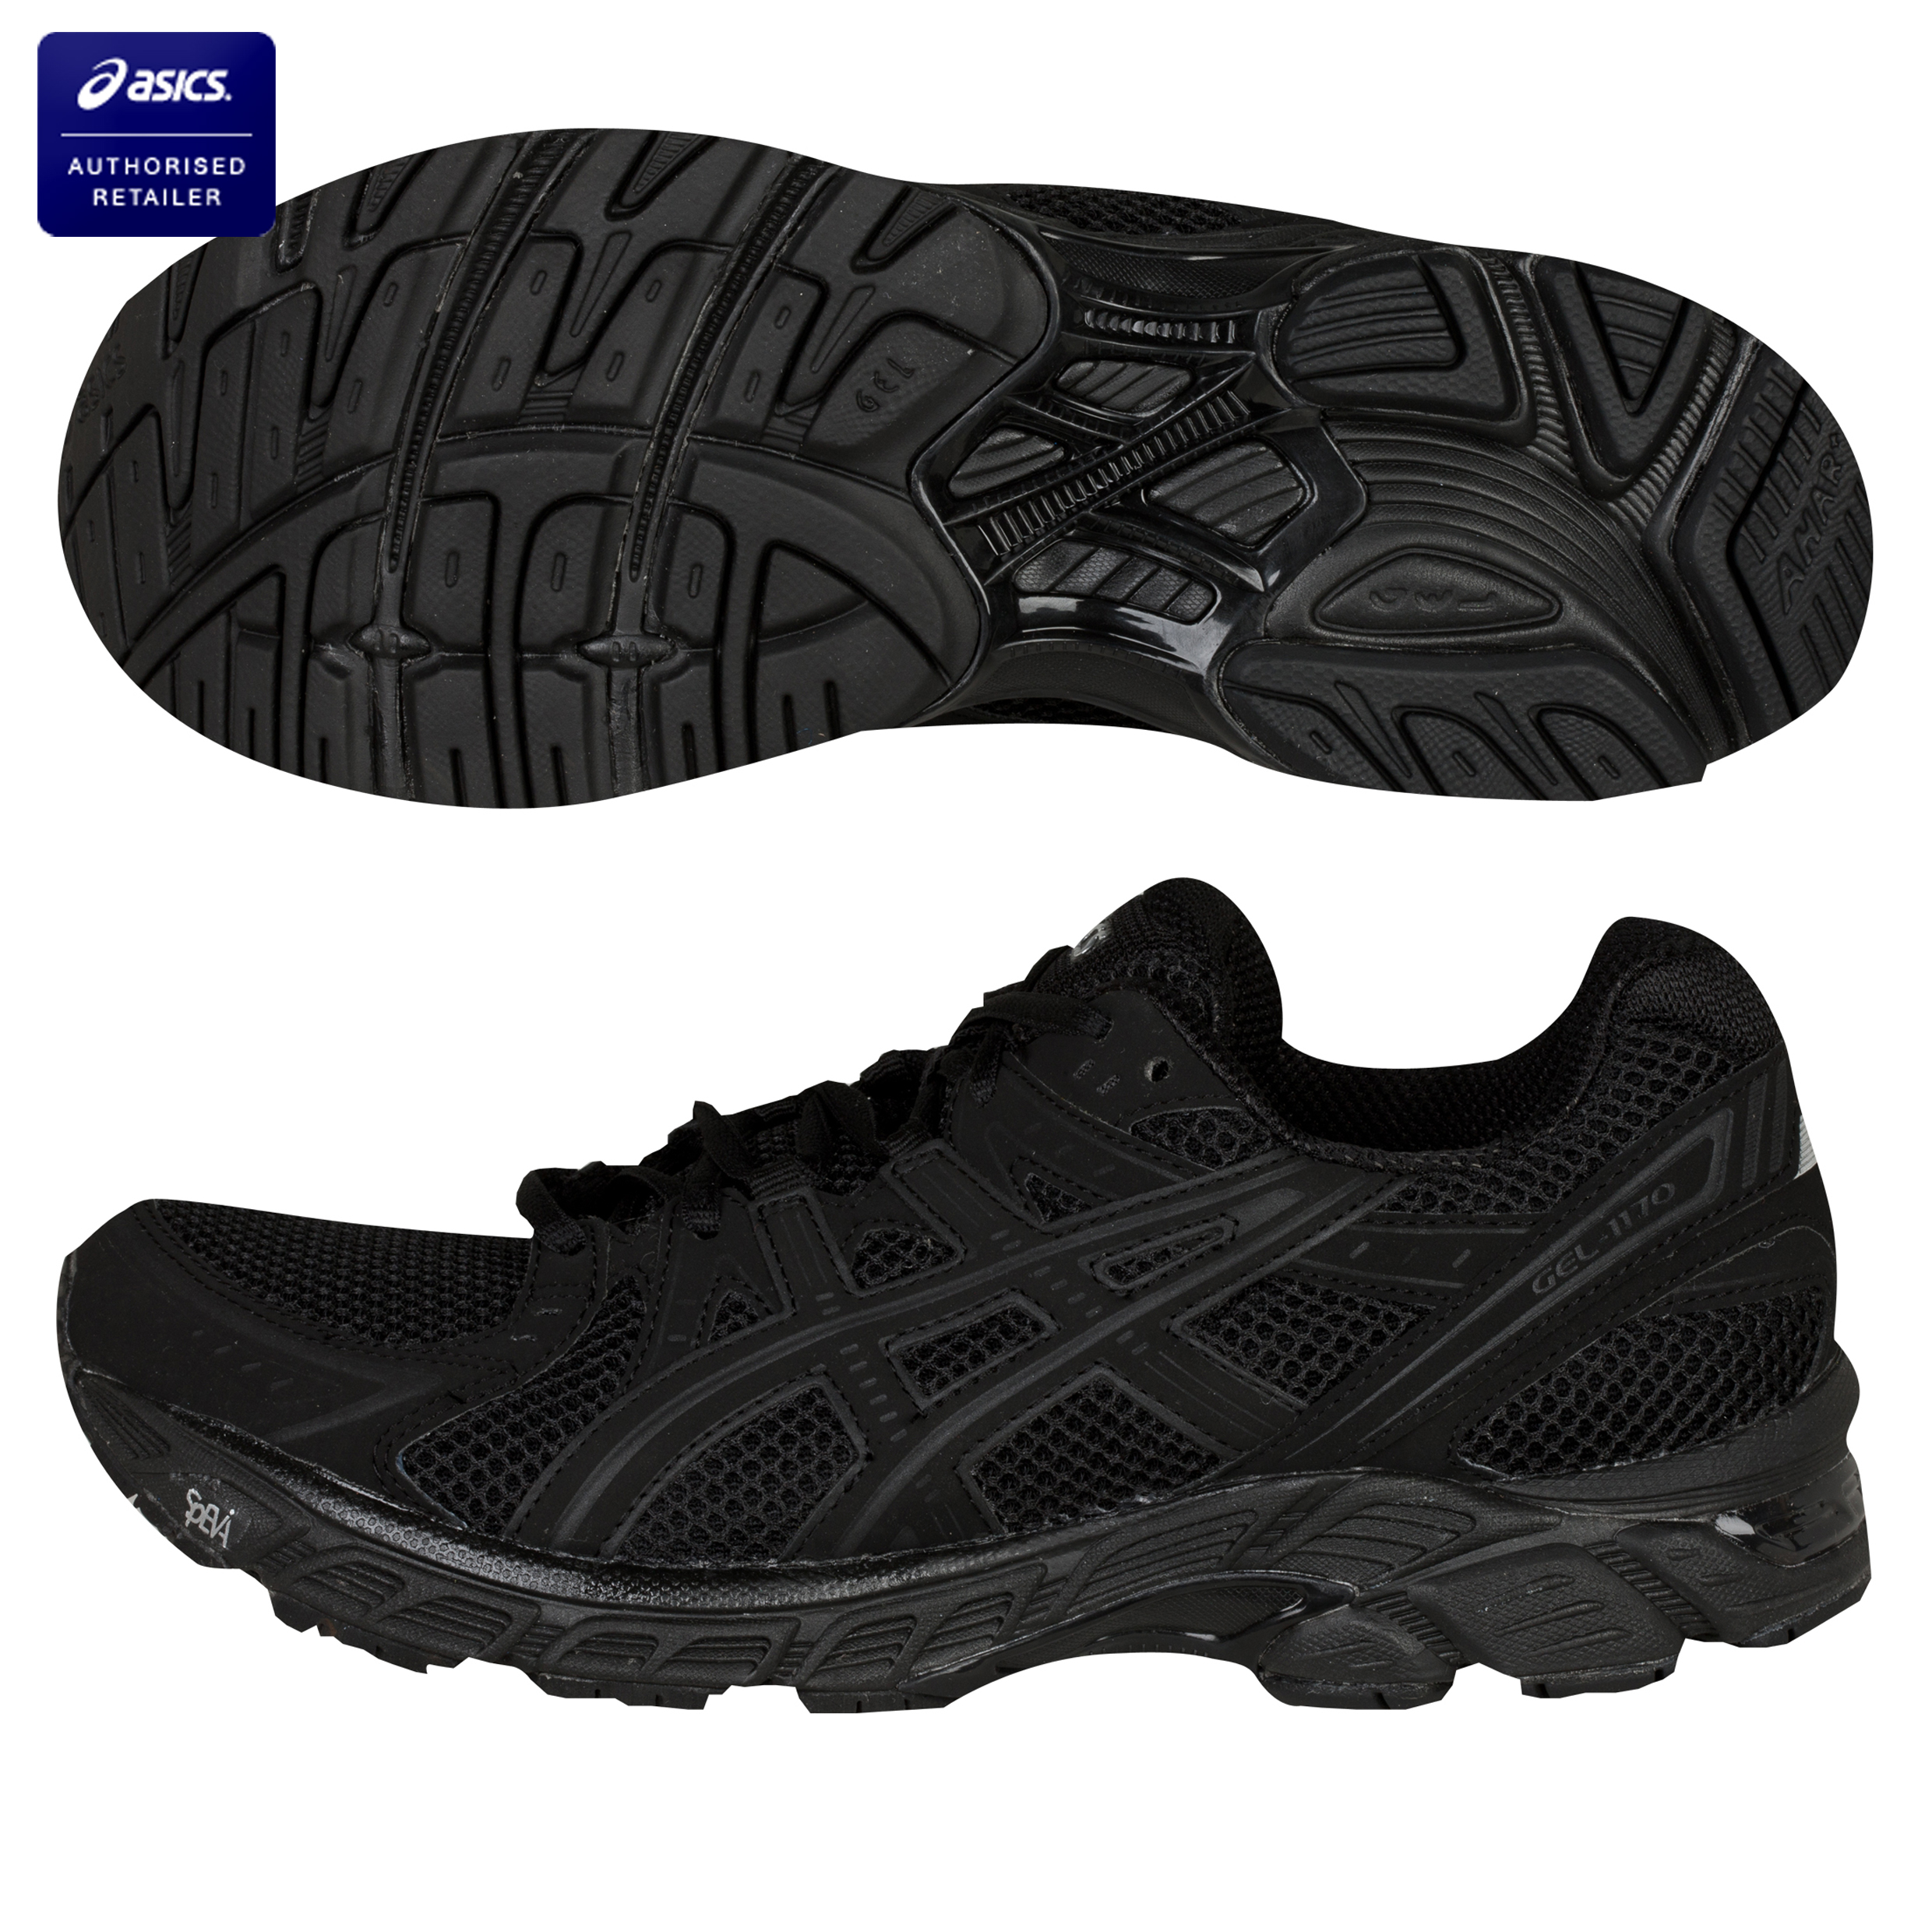 Asics Gel-1170 Running Trainers - Black/Onyx/Graphite  - Womens